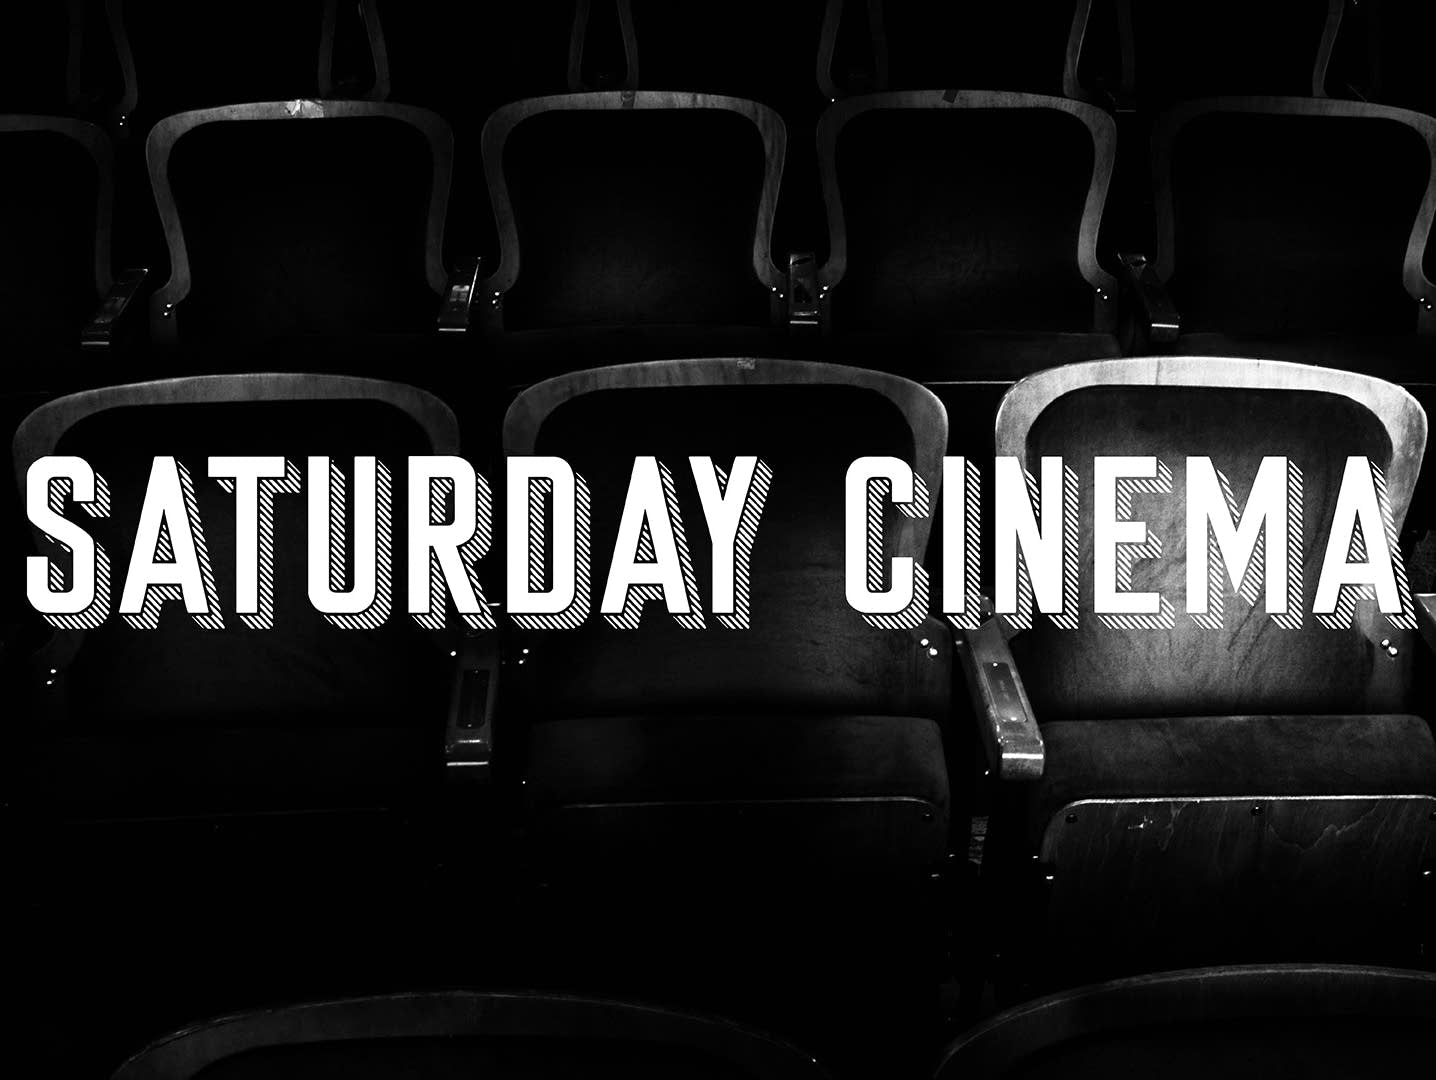 Saturday Cinema theater seats